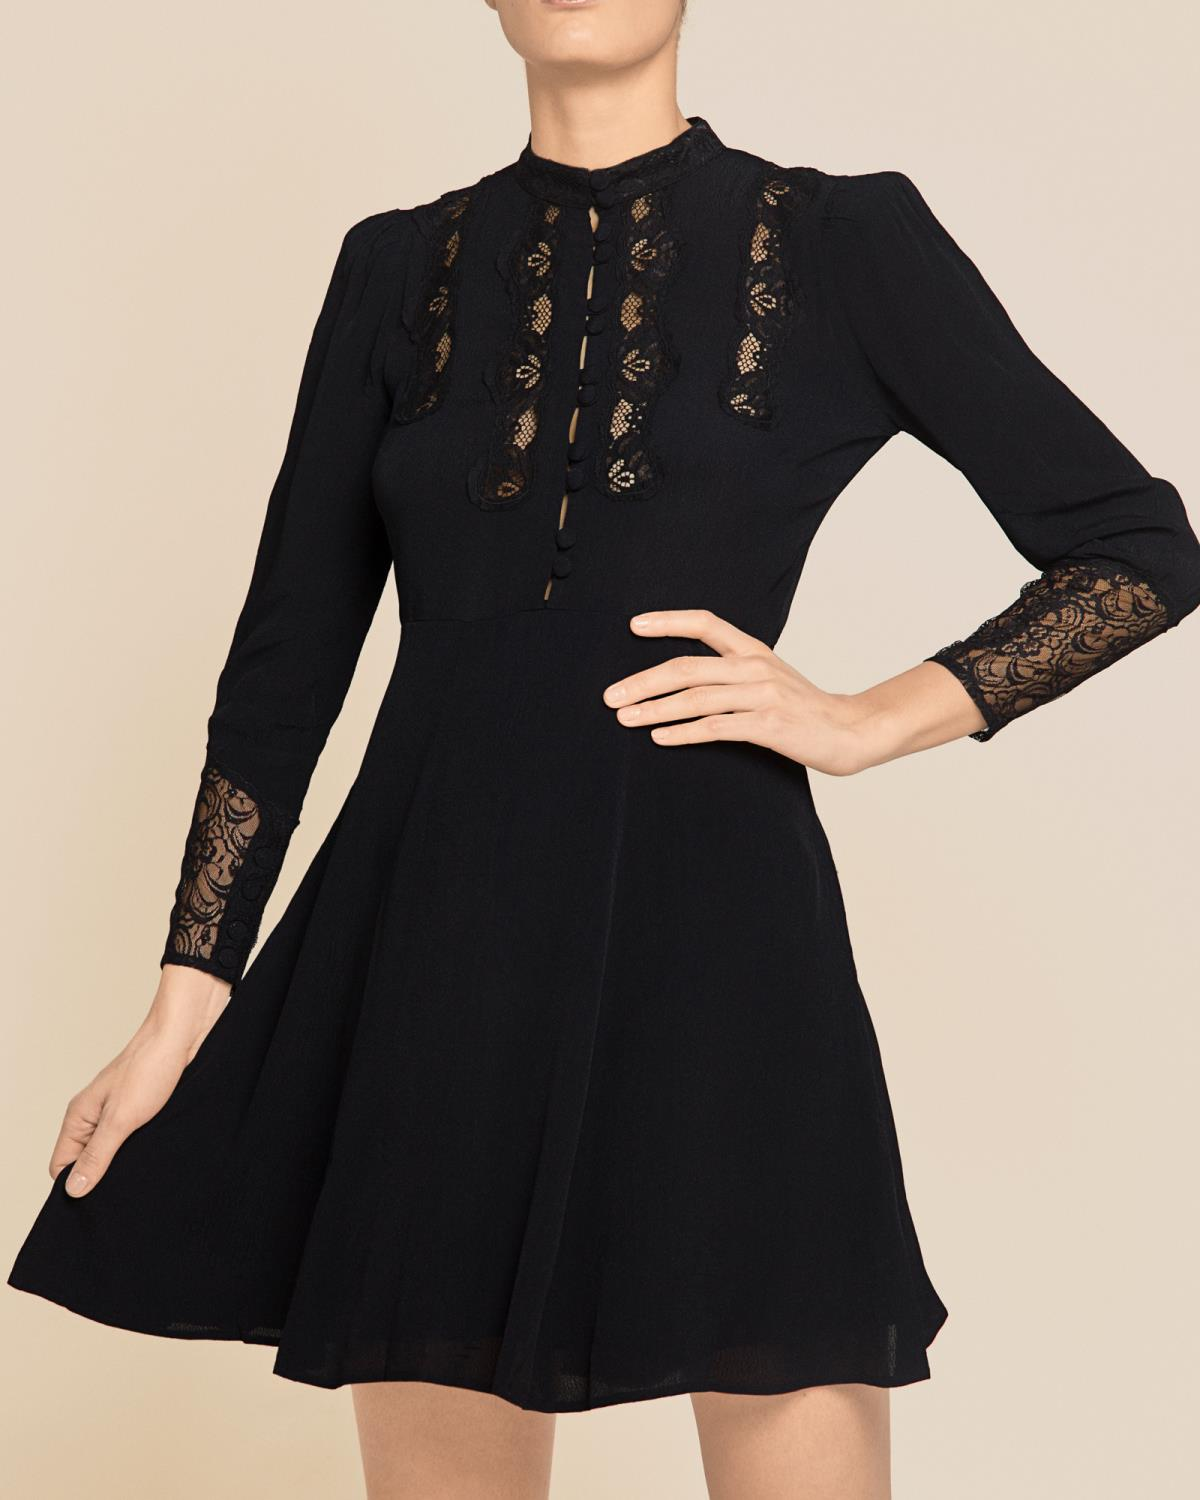 Elegant Lace Mini Dress